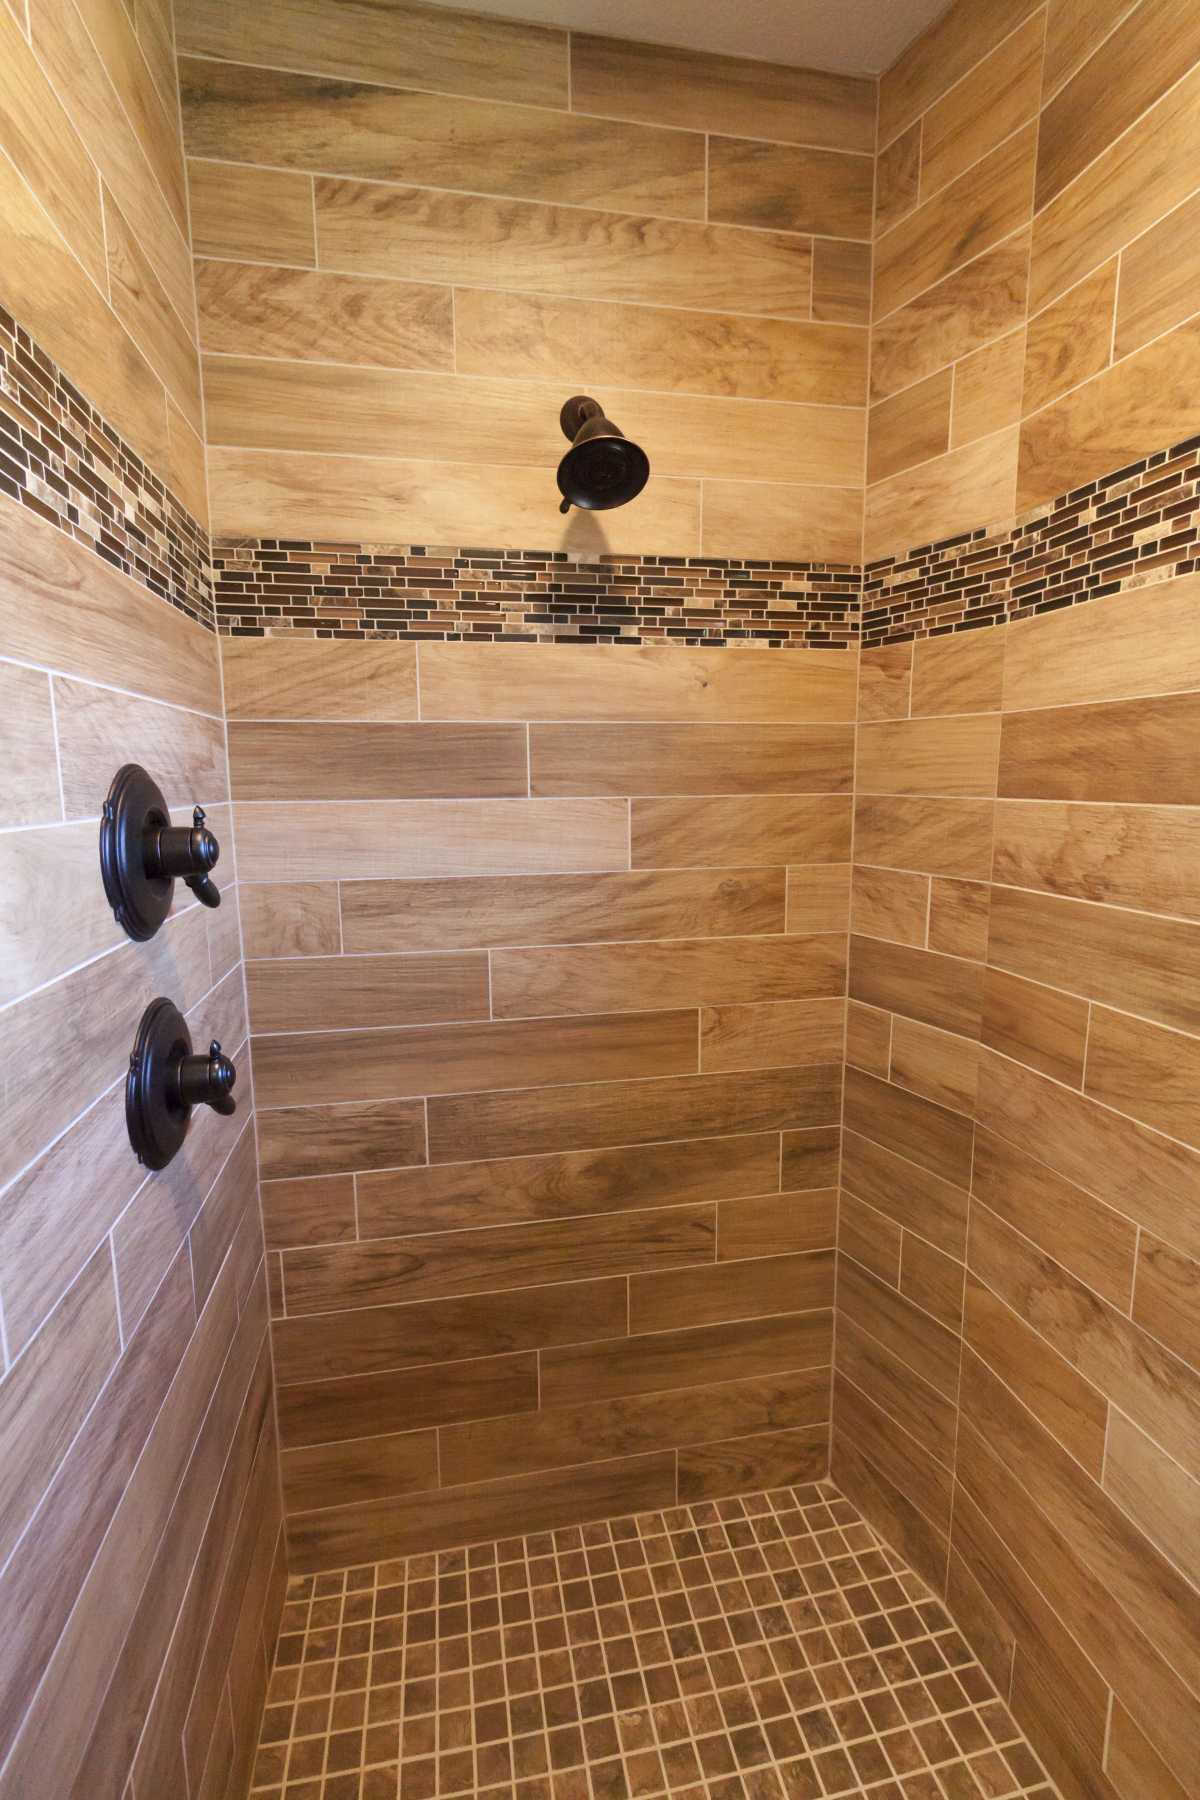 The beautiful wood-like tile in the master walk-in shower.